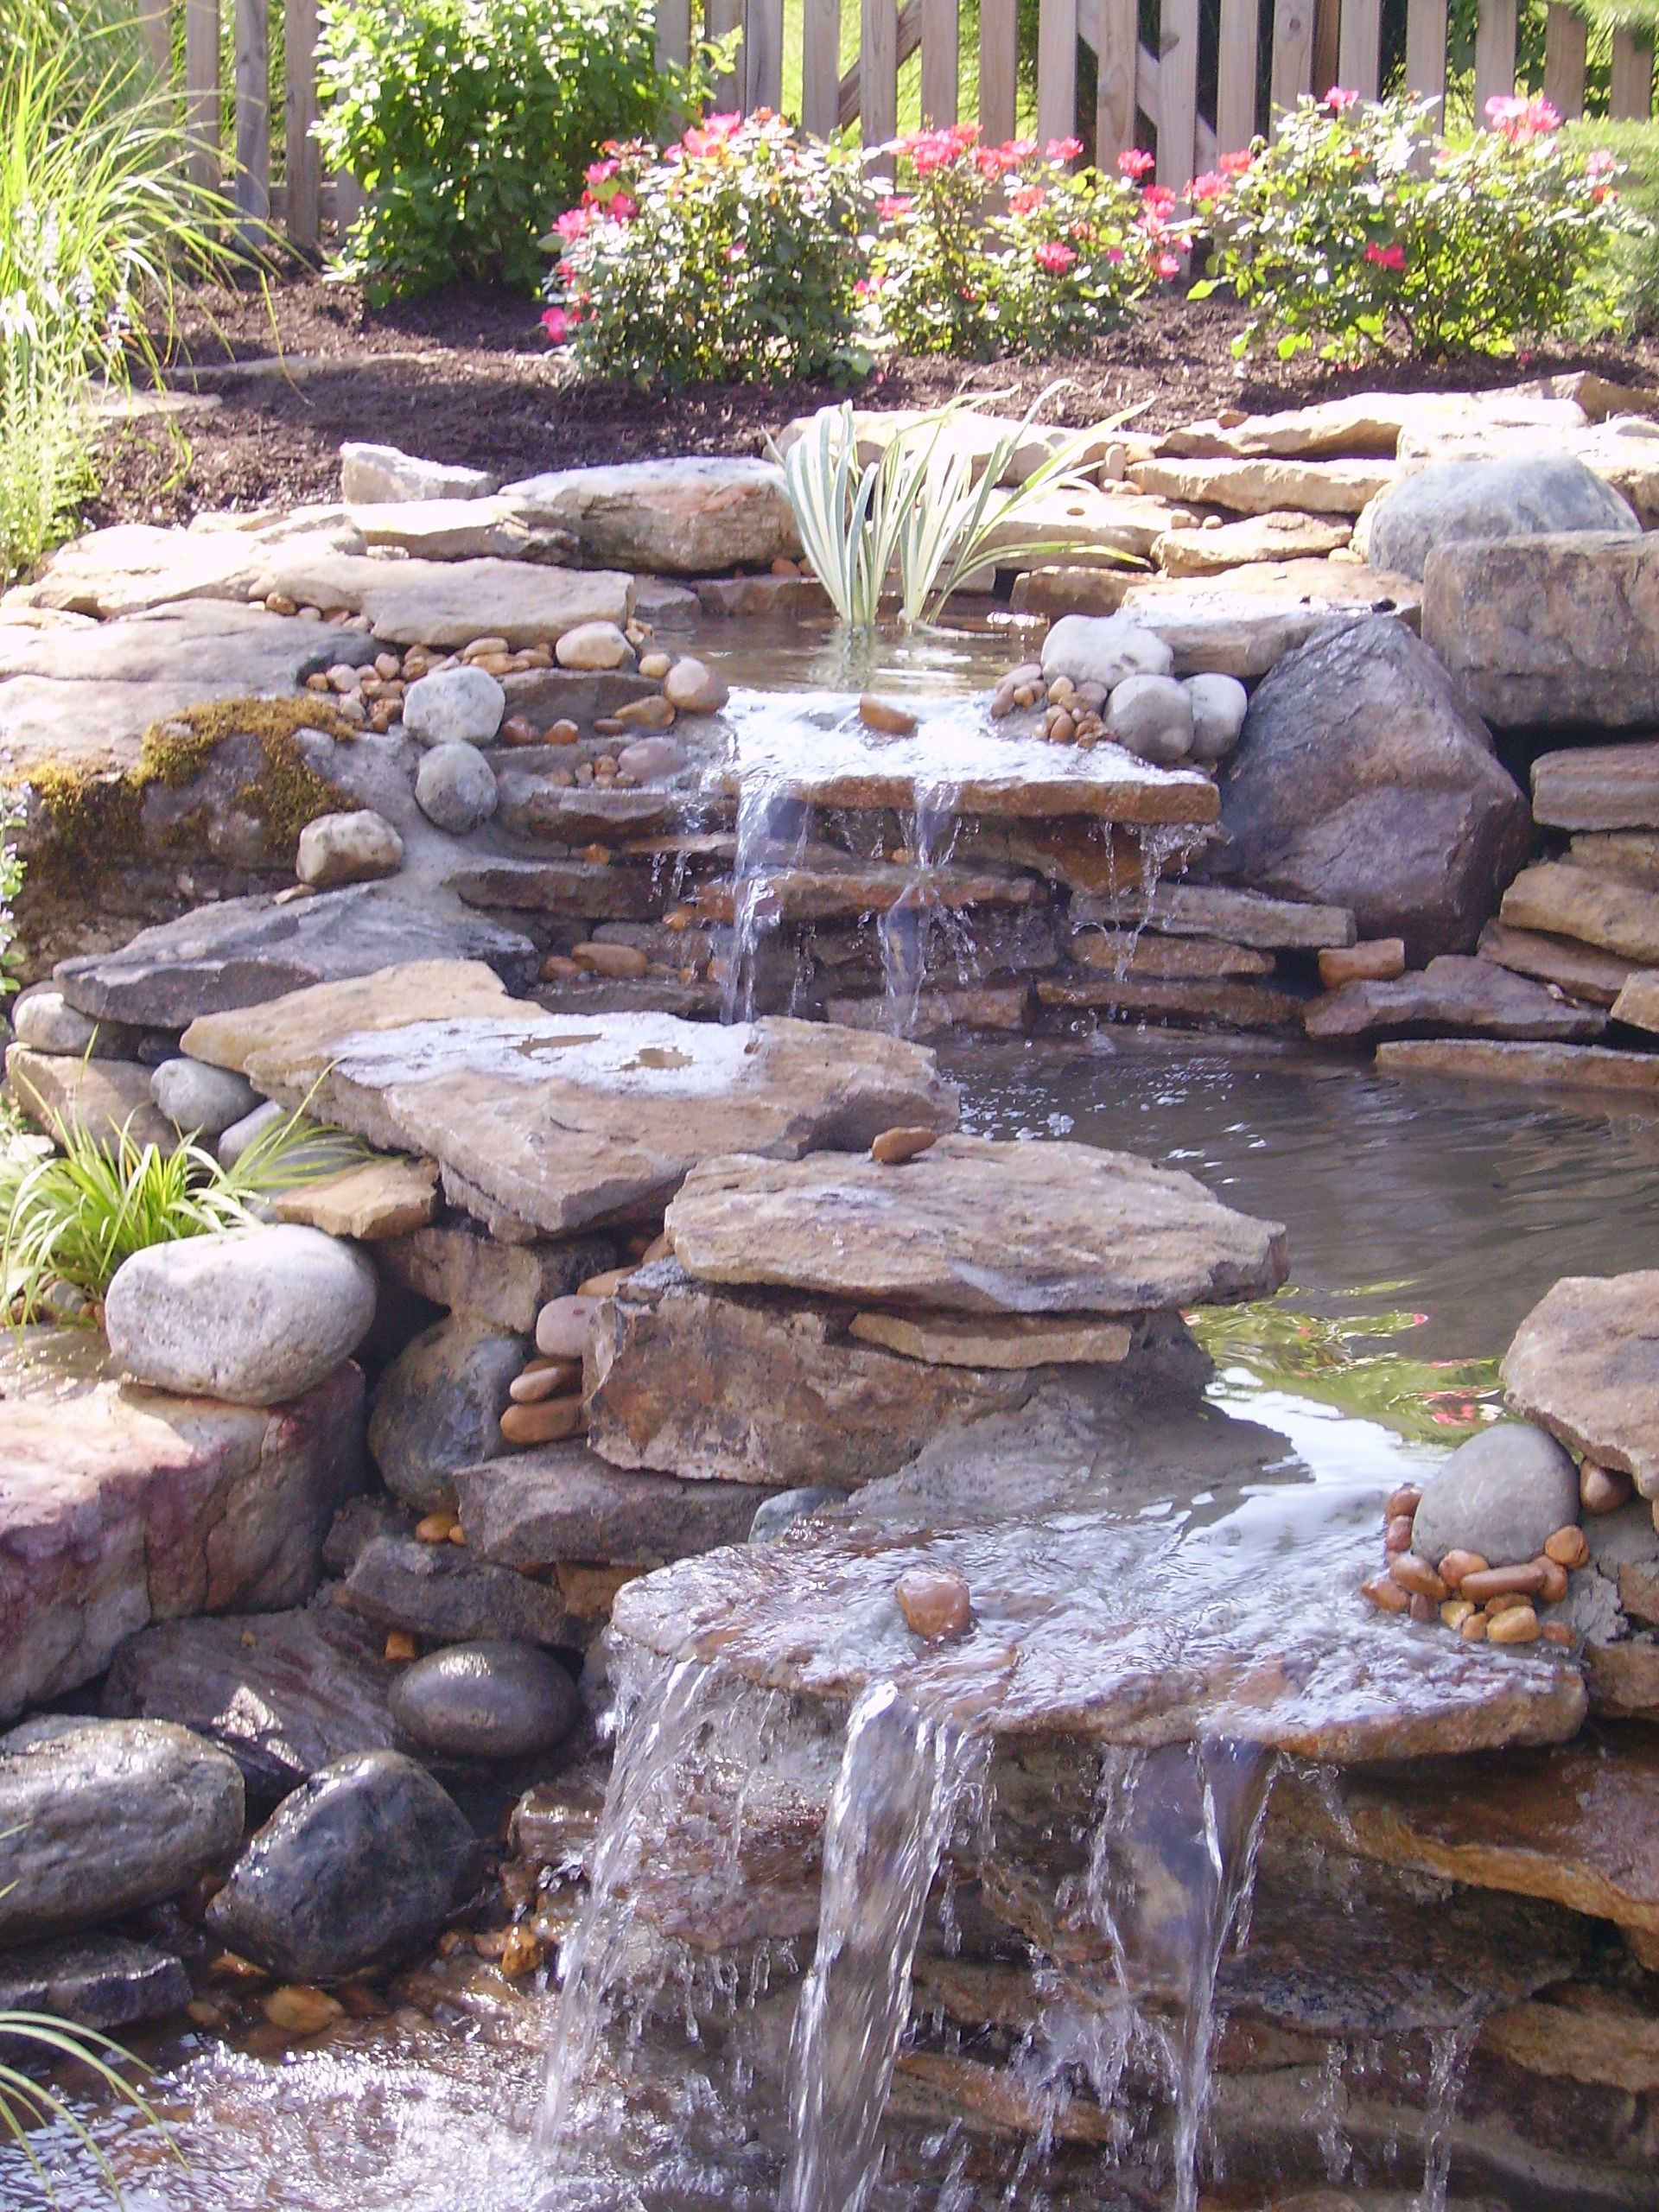 There are few better features than a pond and waterfall for Backyard waterfall pond